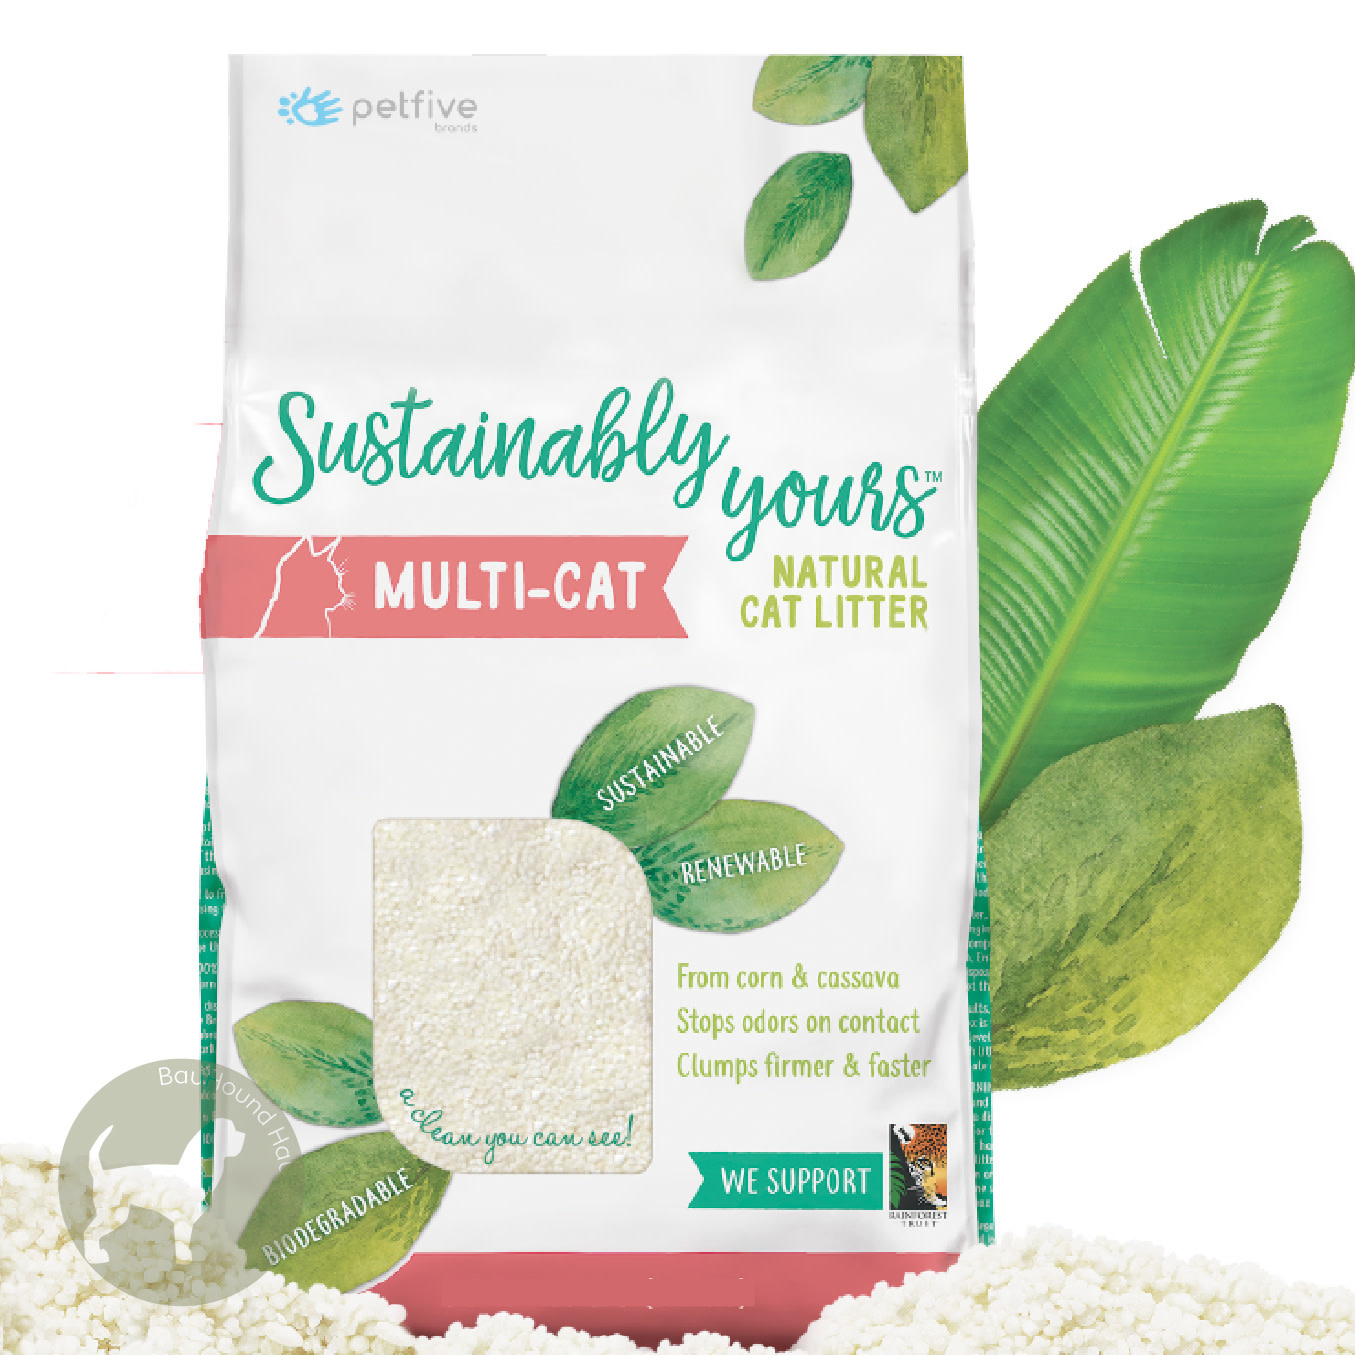 Sustainably Yours Sustainably Yours Multi-Cat Natural Cat Litter, 26lb